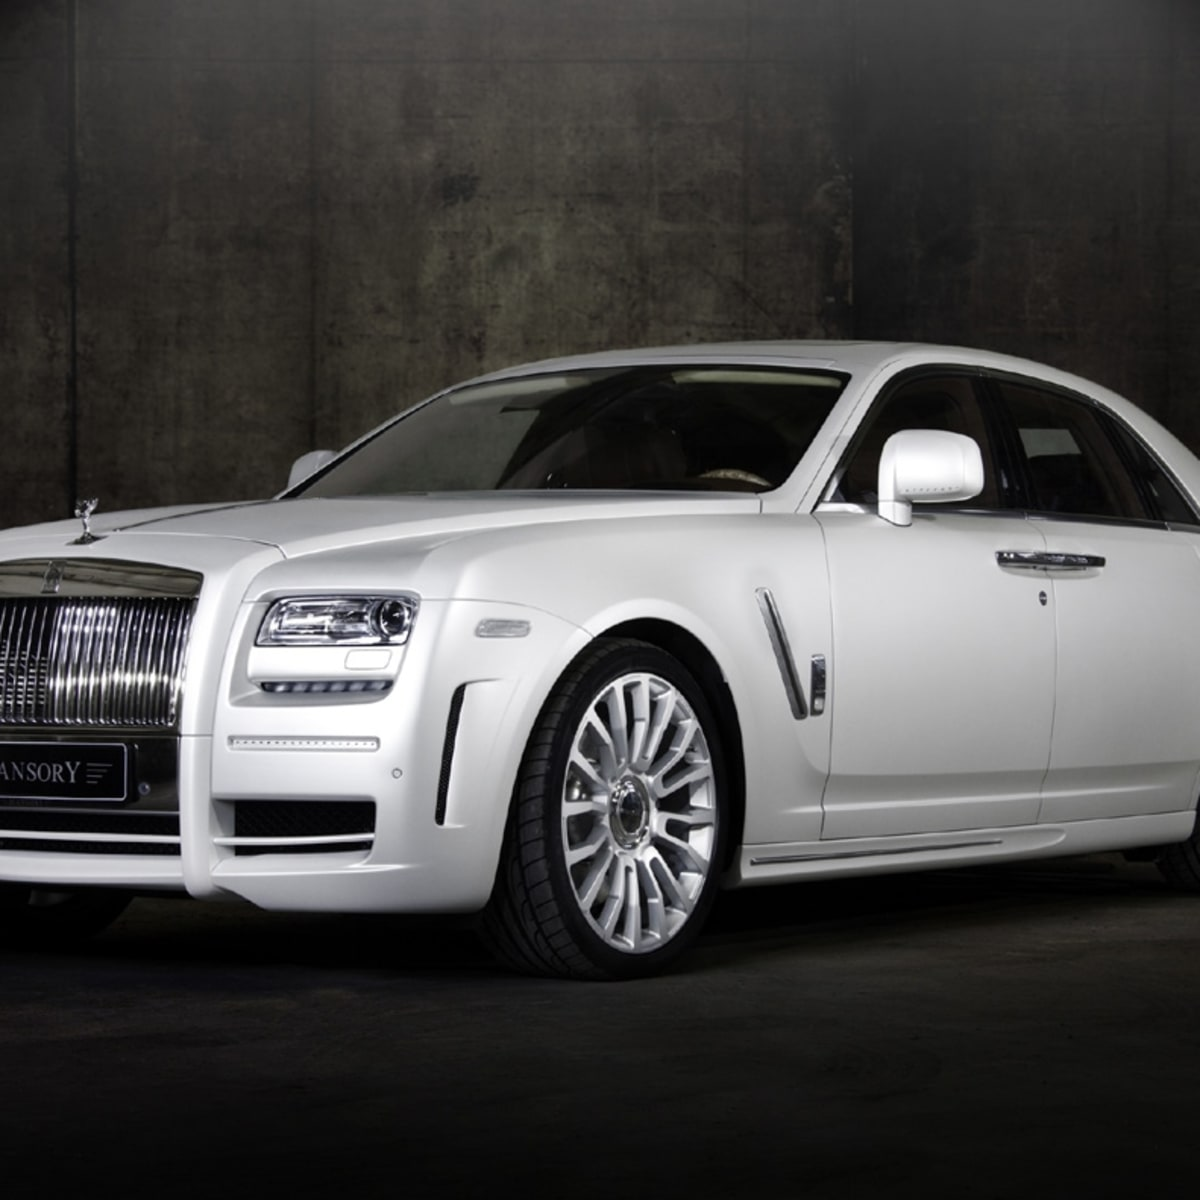 Mansory Rolls Royce White Ghost Limited Caradvice